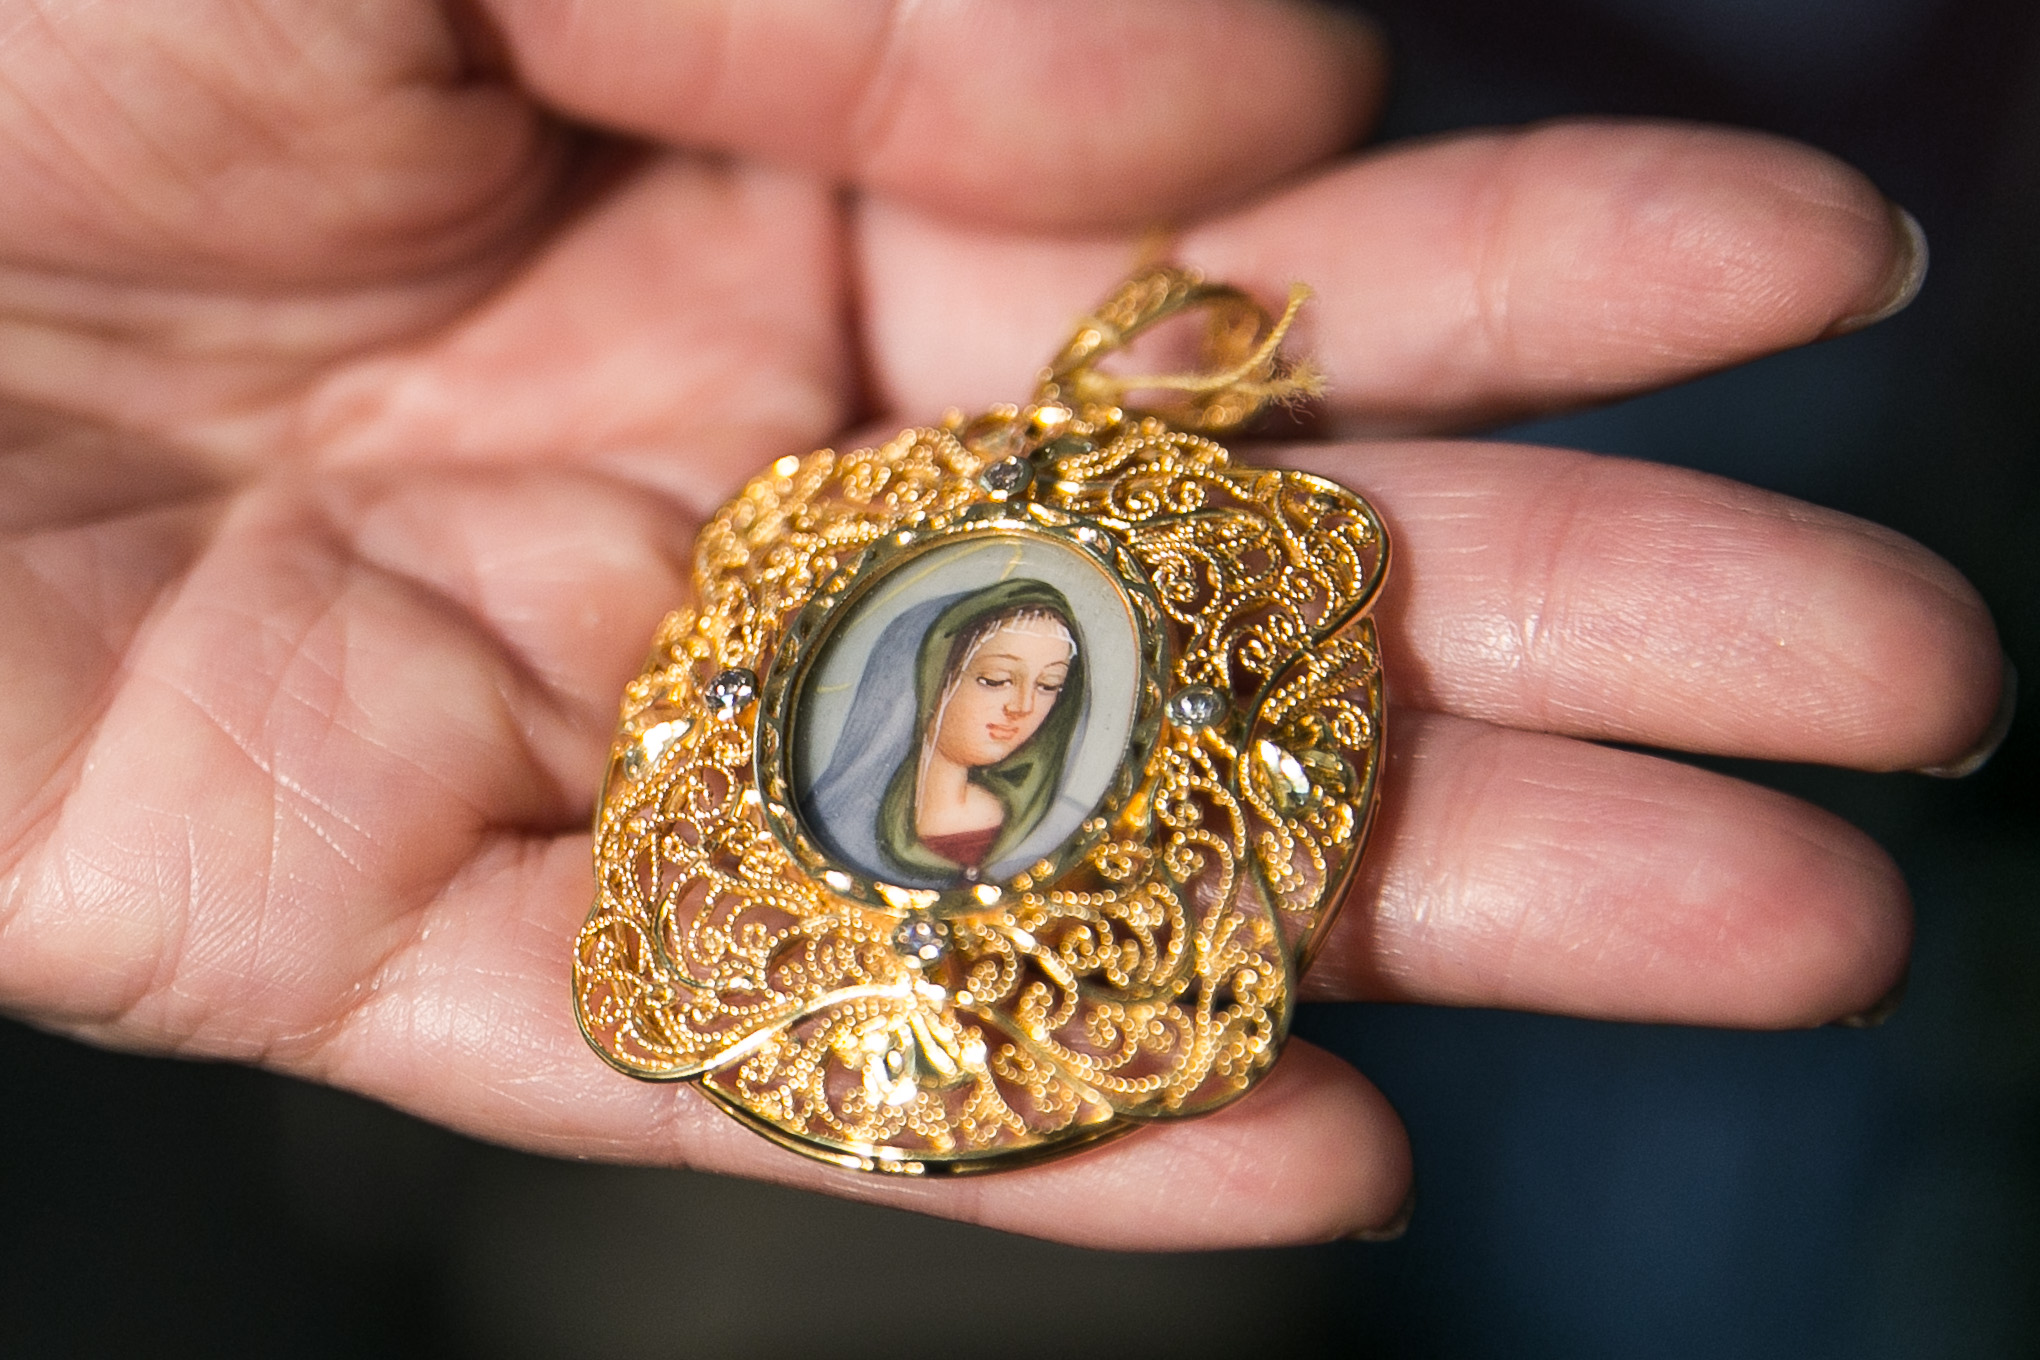 PENDANT. A miniature painting was turned into a pendant and encased in gold. Photo by Pat Nabong/Rappler